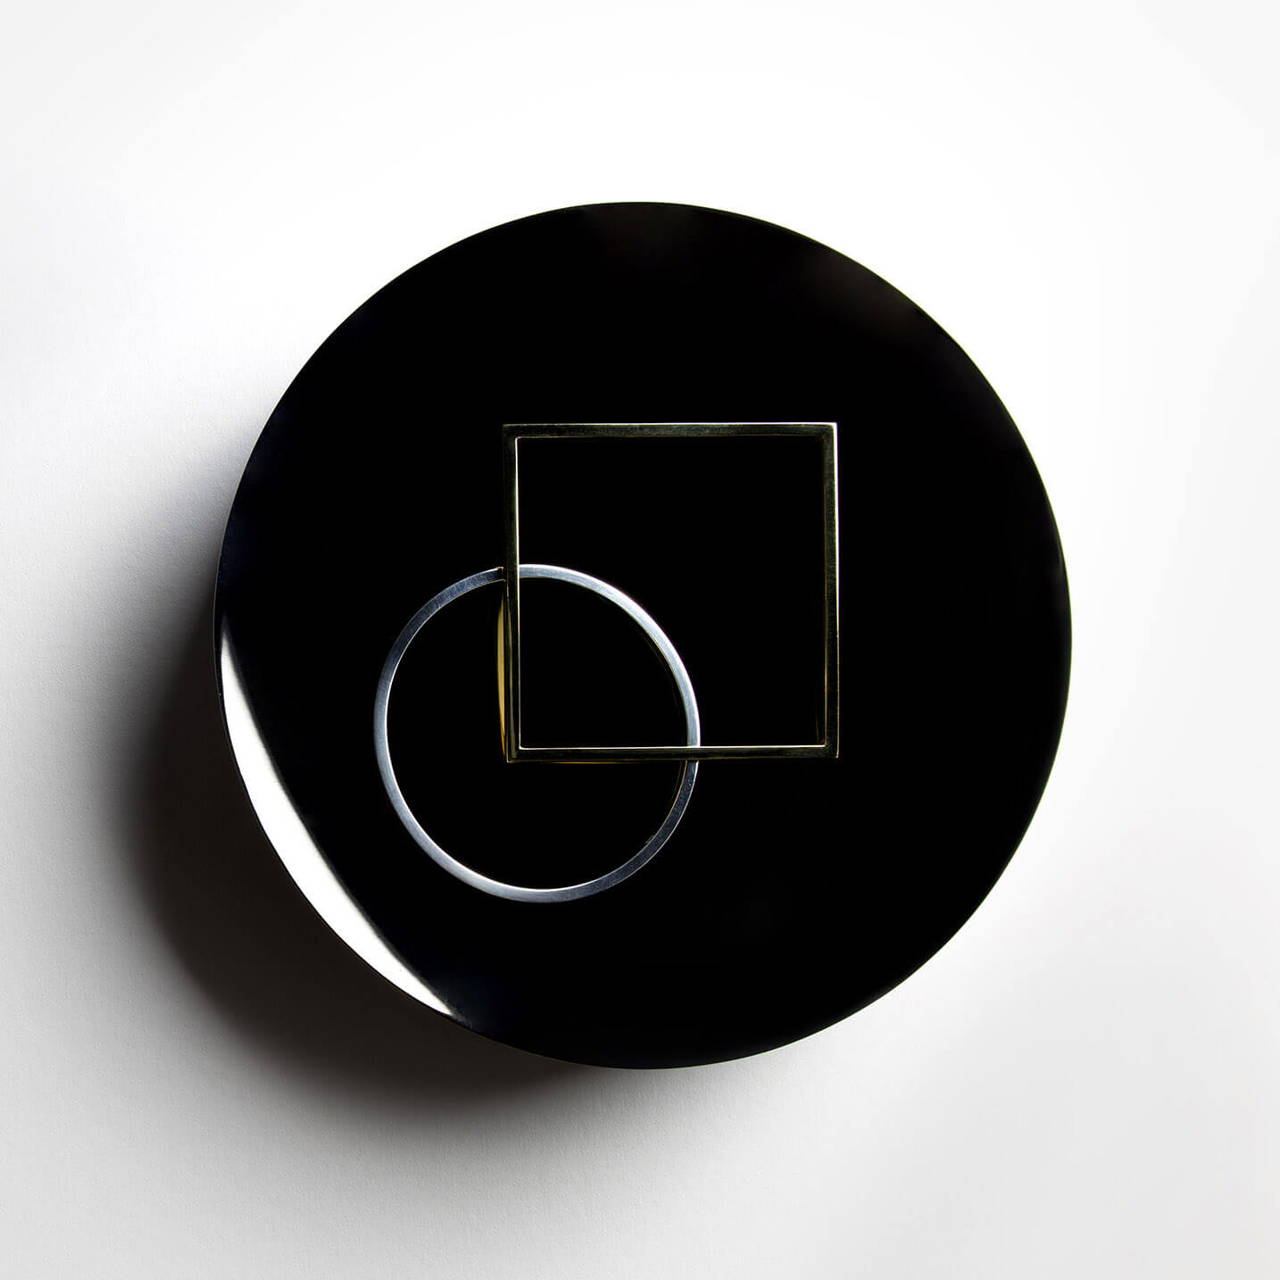 Black Nickel Dish 180 with Round and Square Bangles